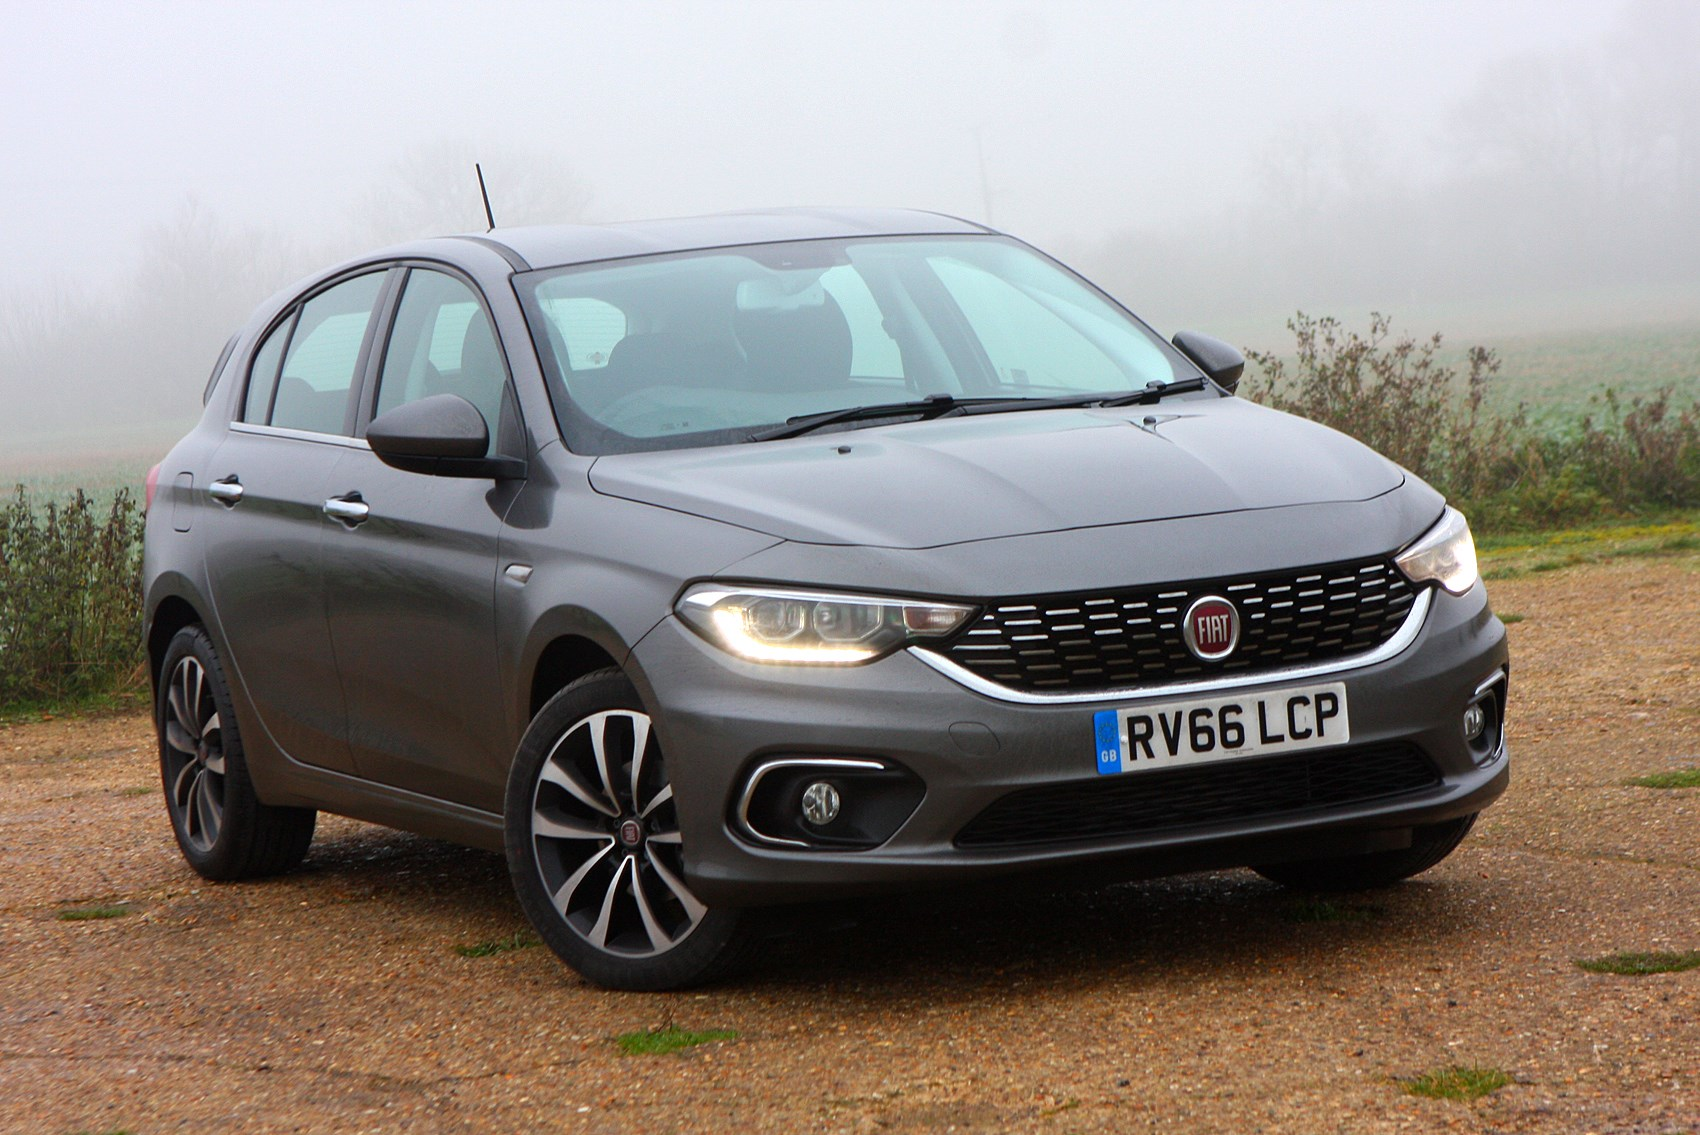 Fiat Tipo Hatchback Review (2016 - ) | Parkers